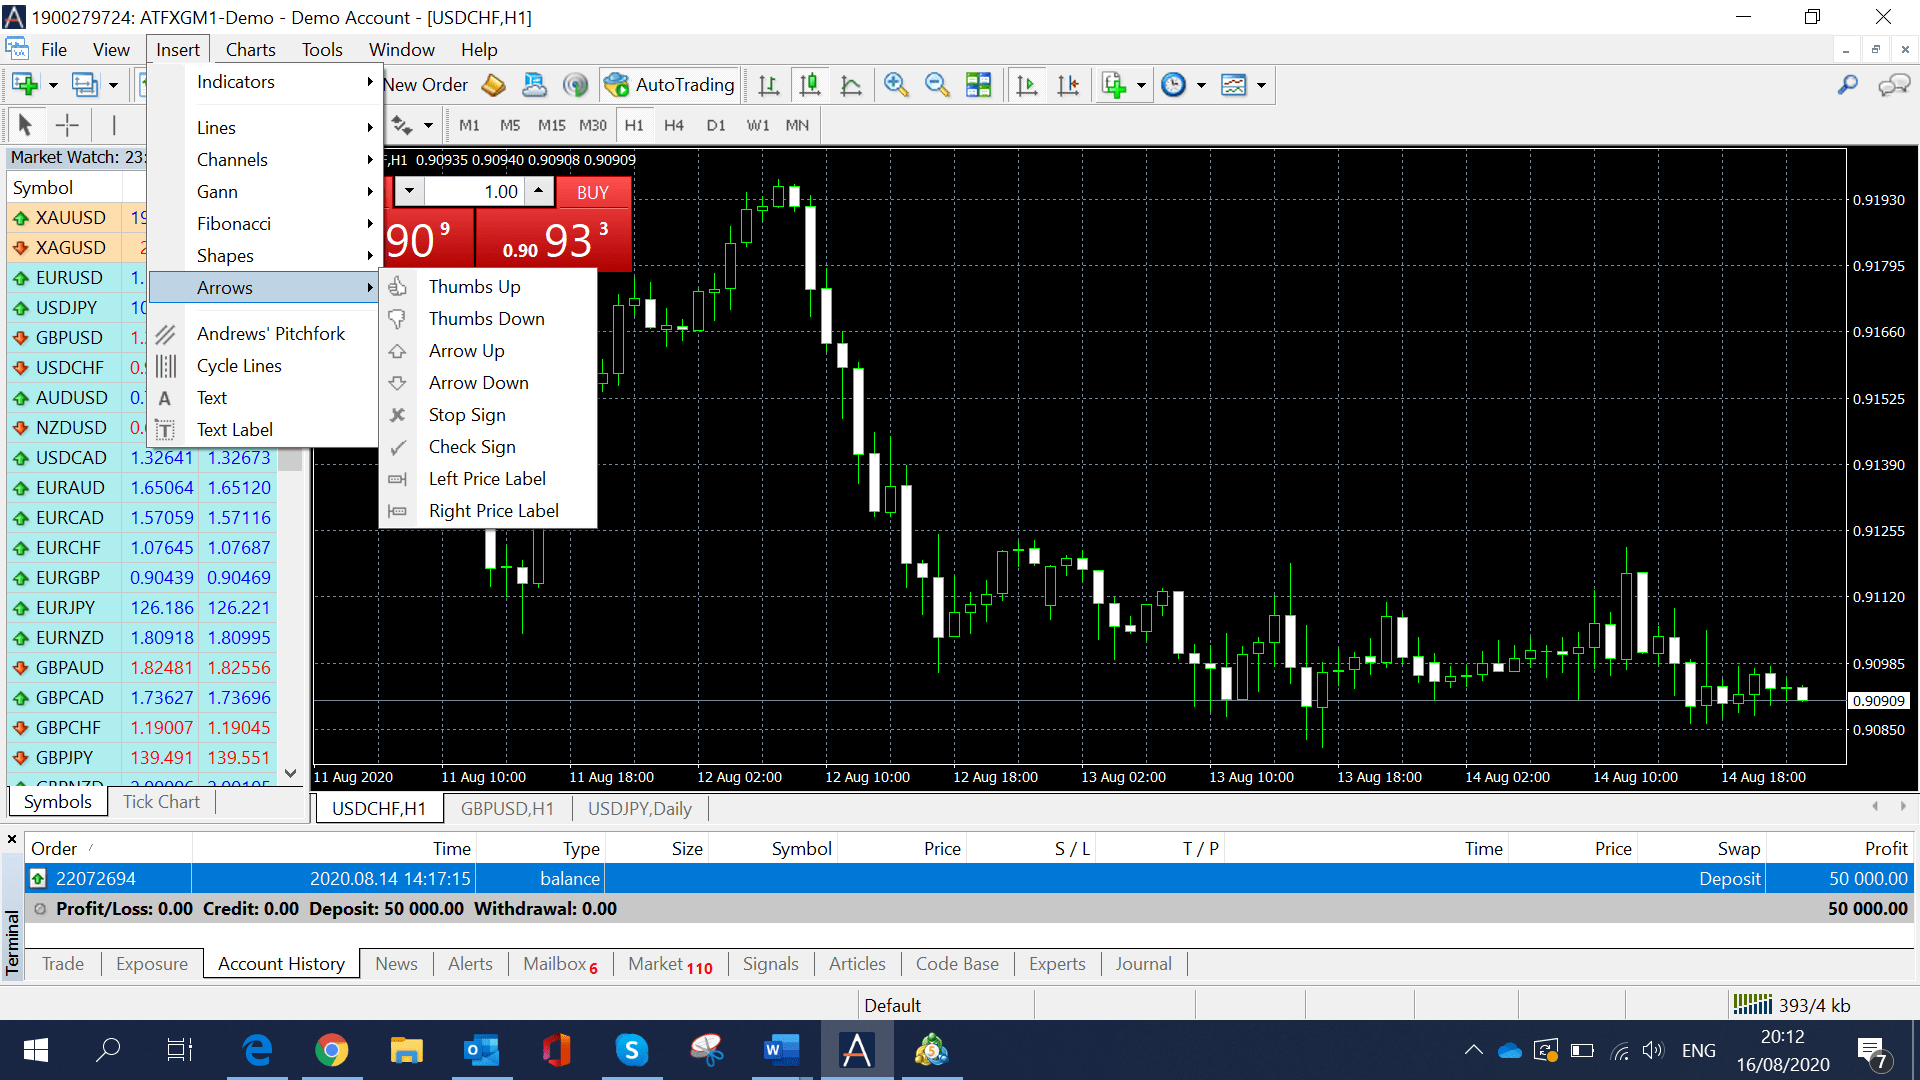 tradingplatforms-metatrader4-whatismt4-and-howtouseit-drawing-tools-image